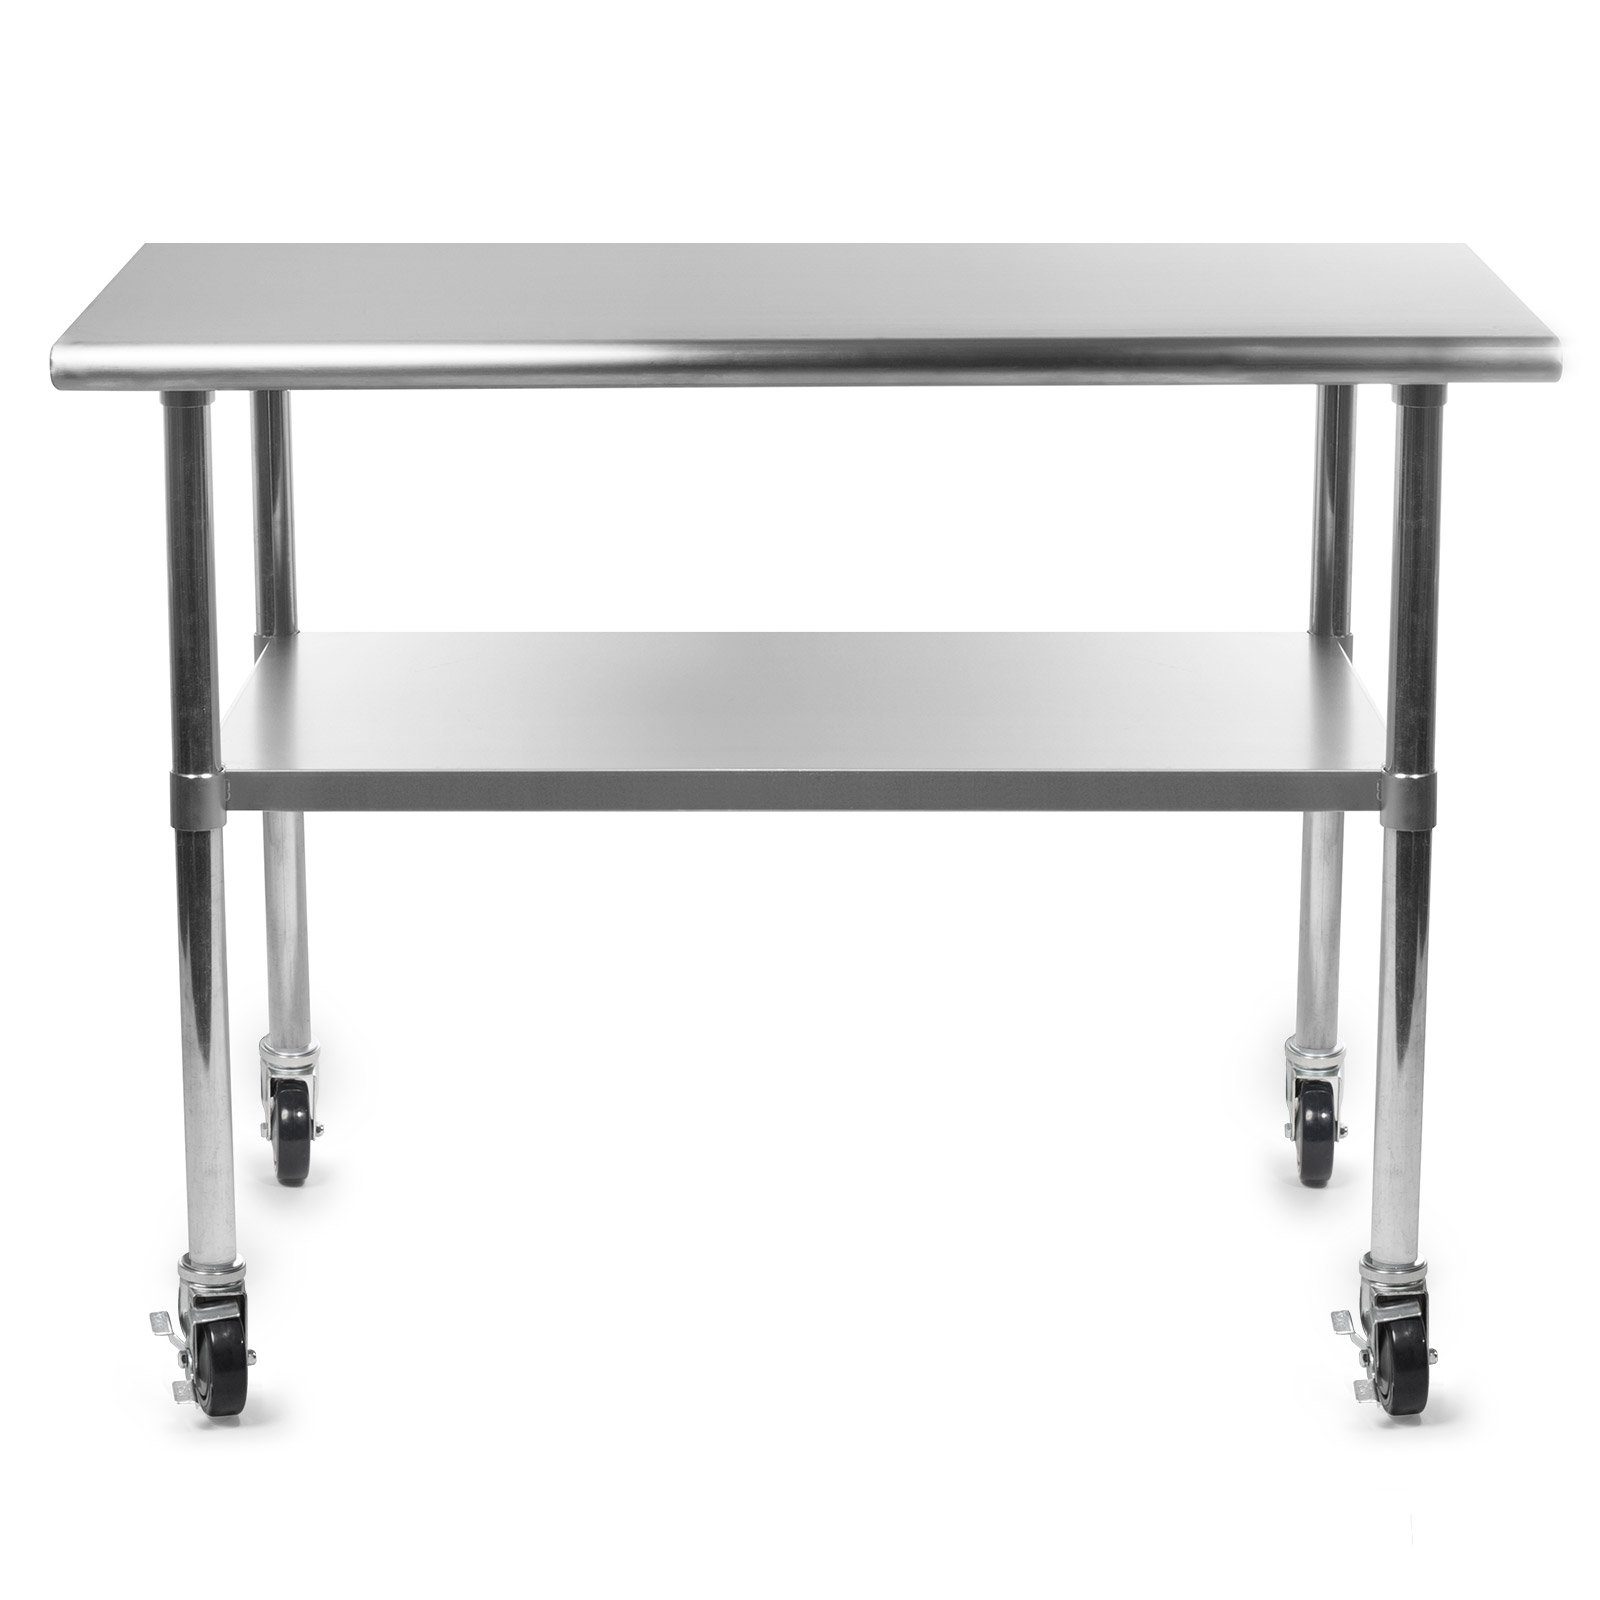 Gridmann NSF Stainless Steel Commercial Kitchen Prep & Work Table w/ 4 Casters (Wheels) - 48 in. x 24 in. by Gridmann (Image #3)